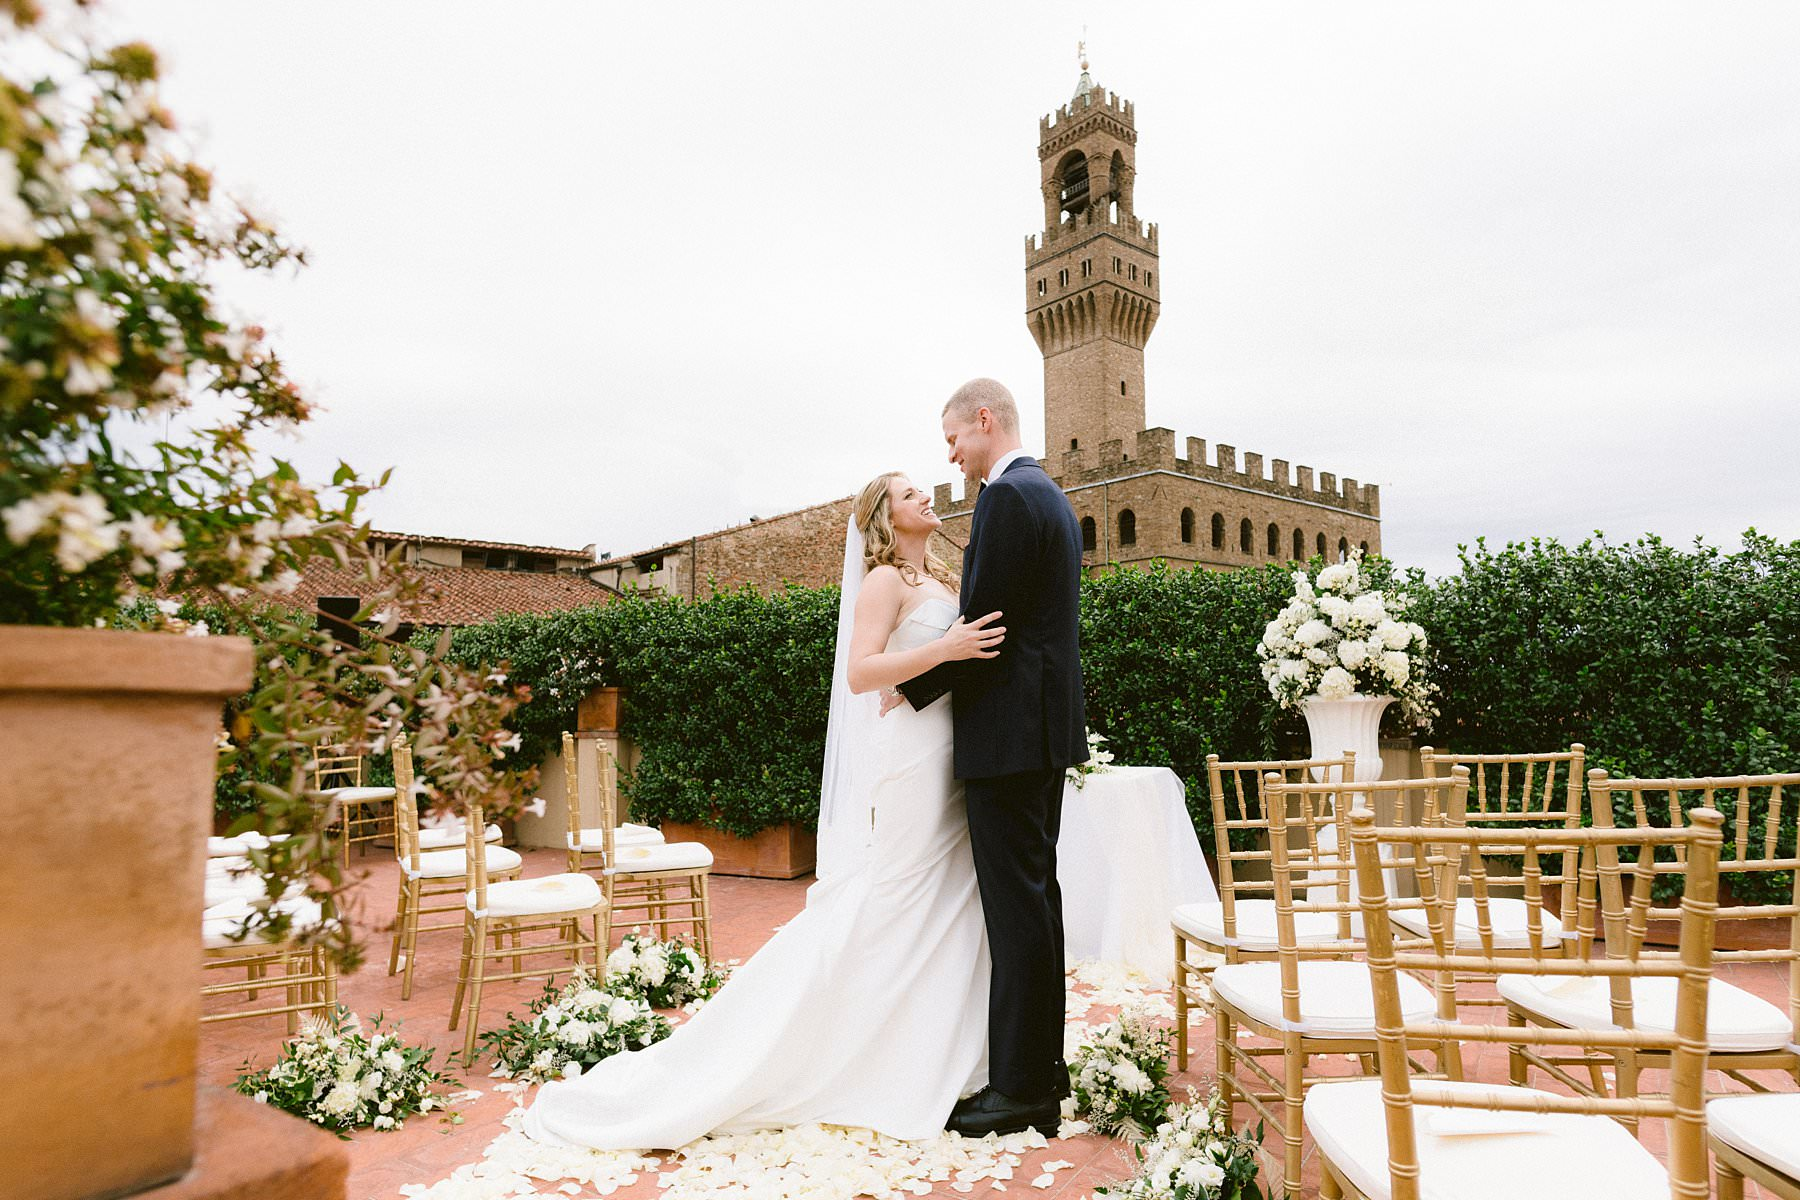 Intimate exquisite wedding in the heart of Florence, Italy. This beautiful American couple opted for the most elegant and exclusive venues for their exquisite wedding: Grand Hotel Cavour, where they got ready, and Palazzo Gondi, where the ceremony and reception took place